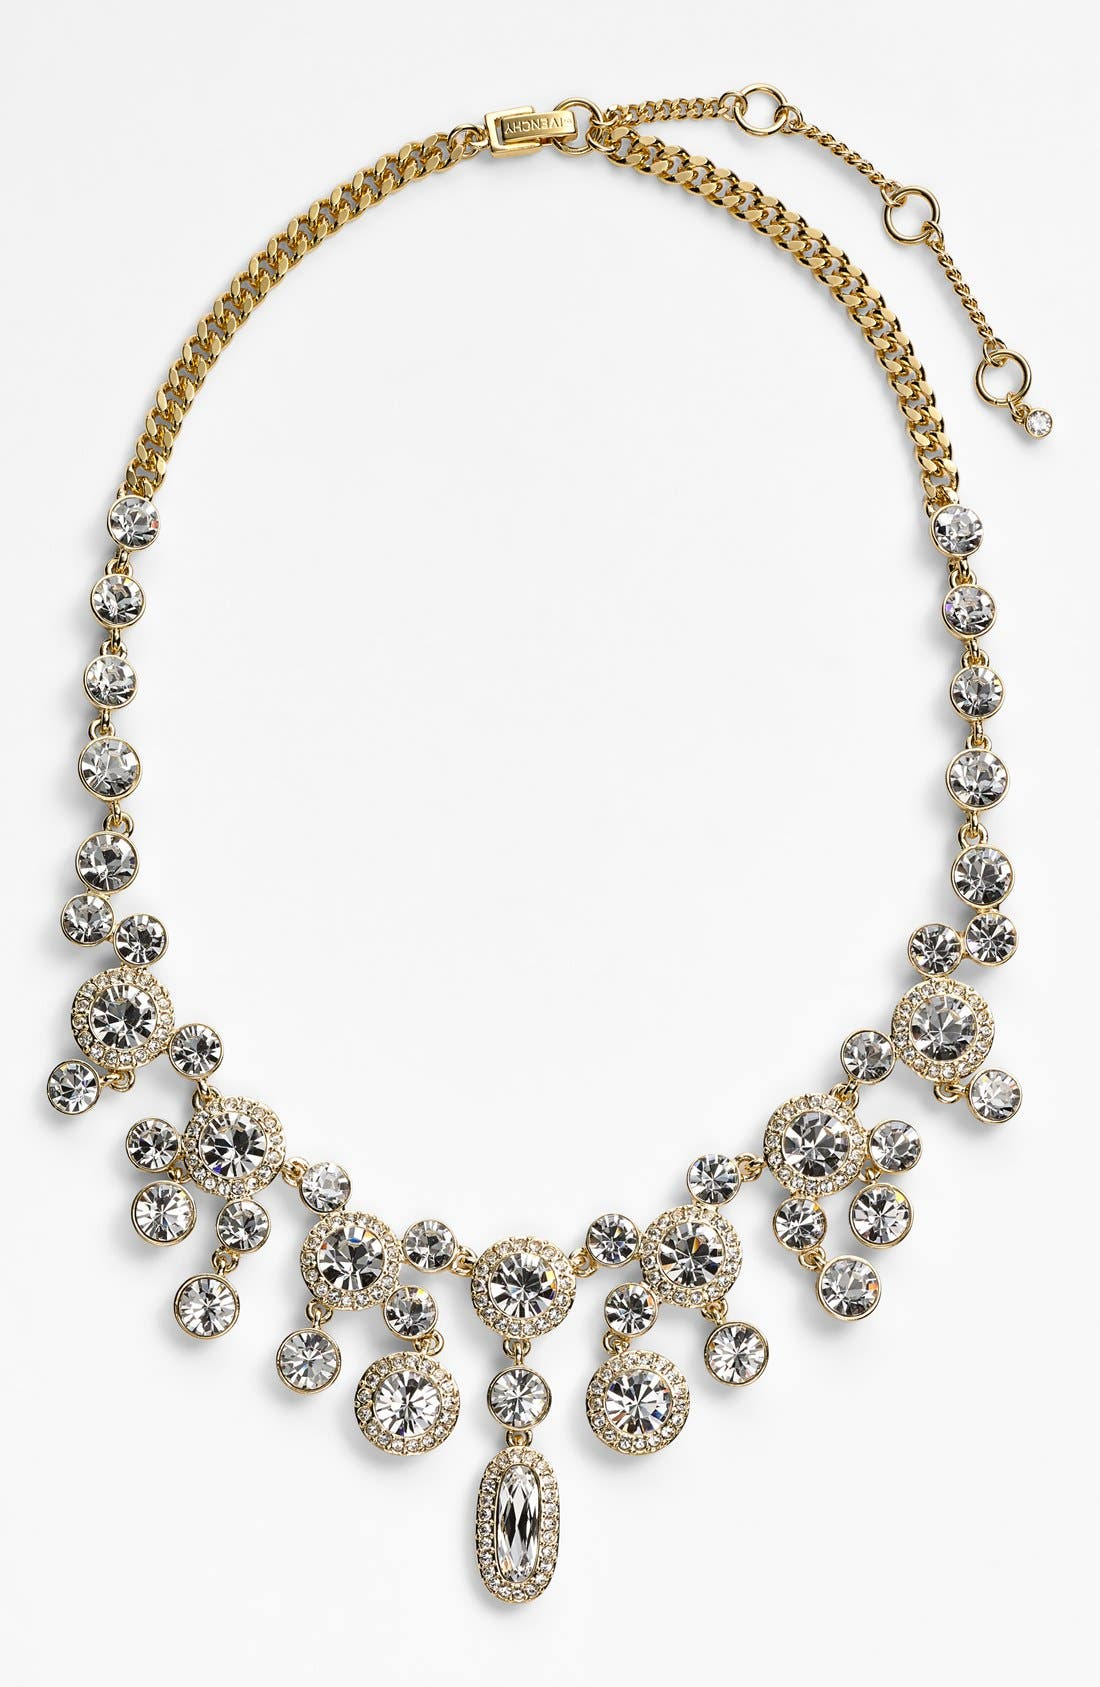 Alternate Image 1 Selected - Givenchy Crystal Bib Necklace